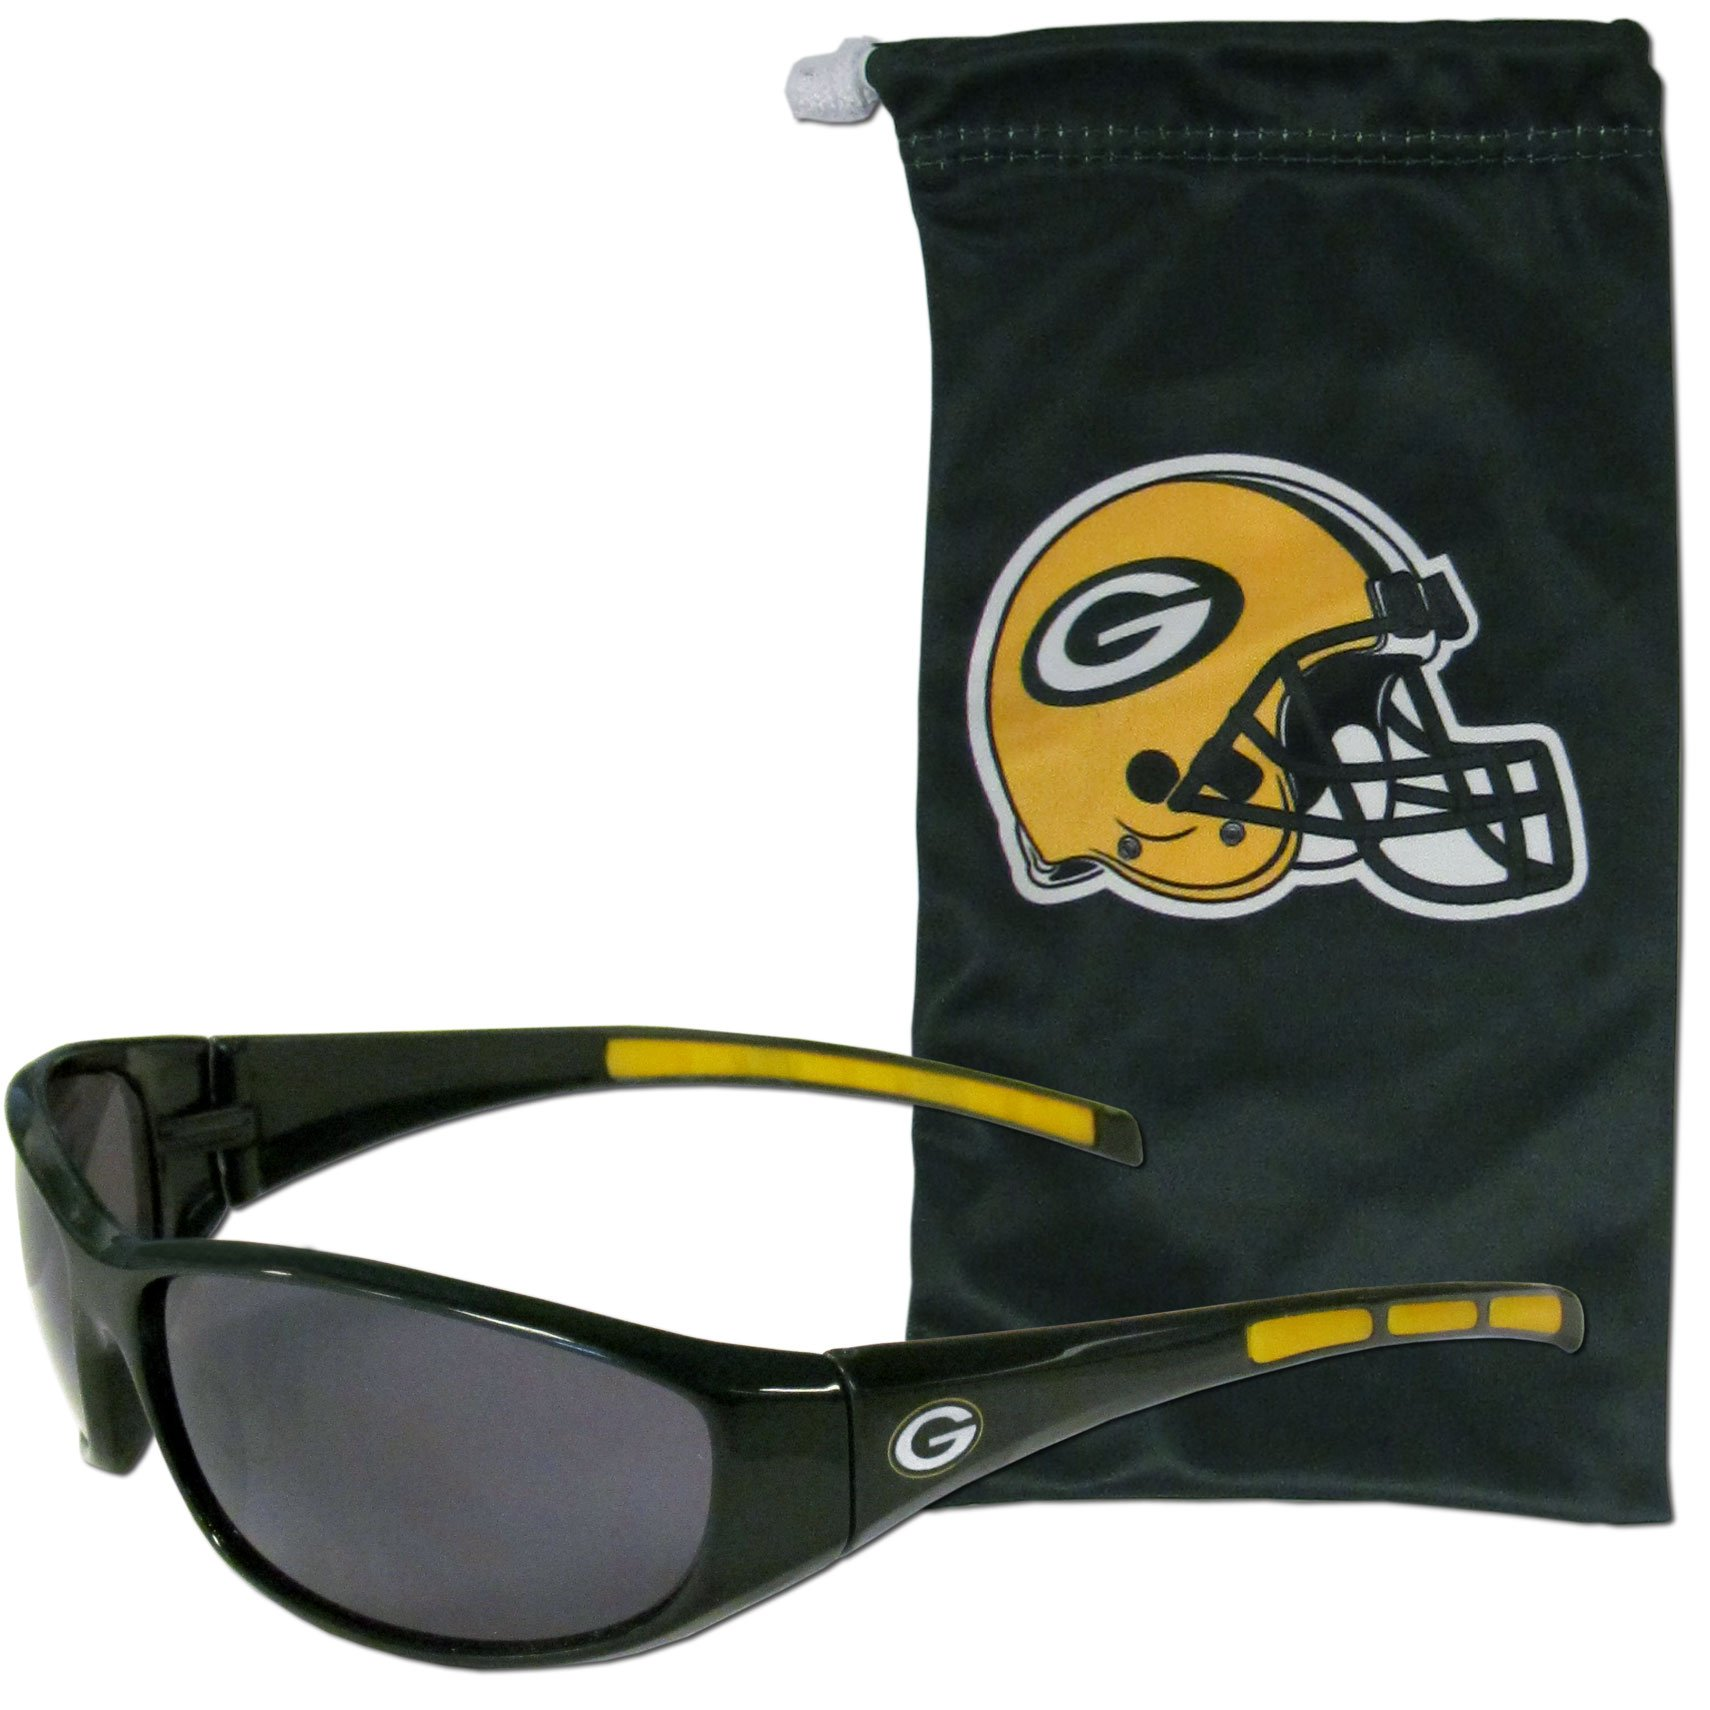 NFL Green Bay Packers Adult Sunglass and Bag Set, Green